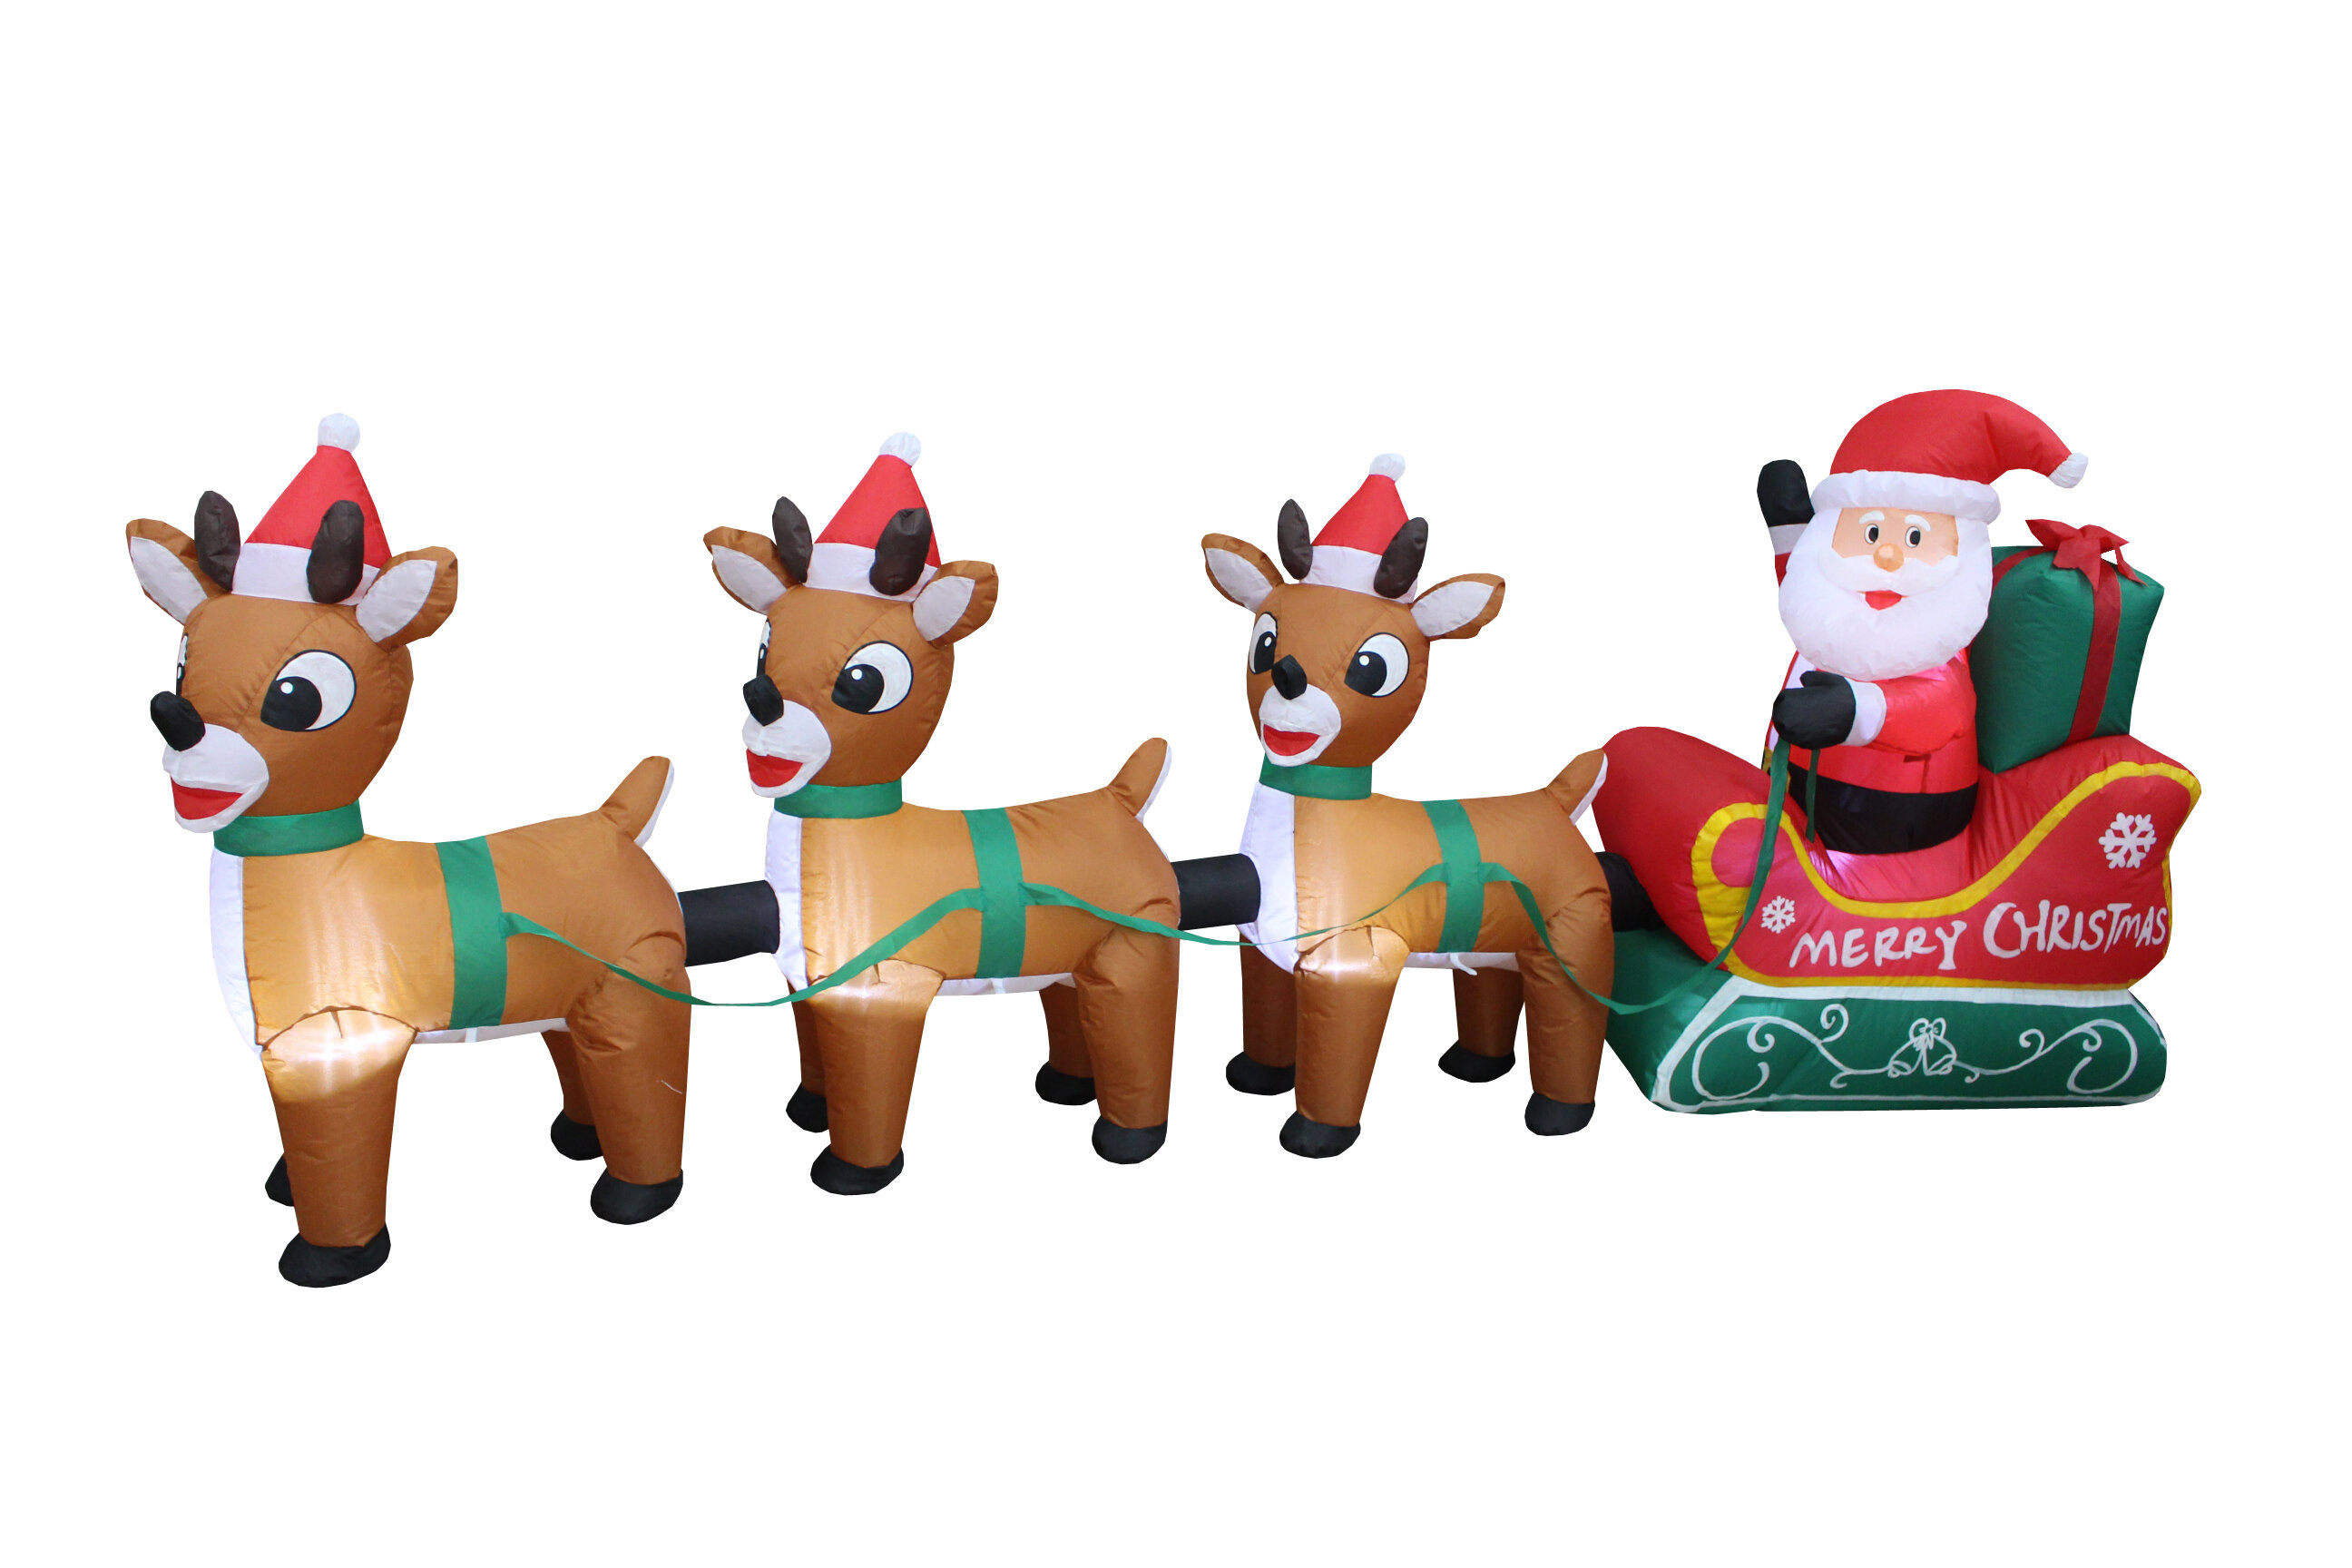 a9516b9069 Santa Claus on Sleigh with Three Reindeer Christmas Inflatable